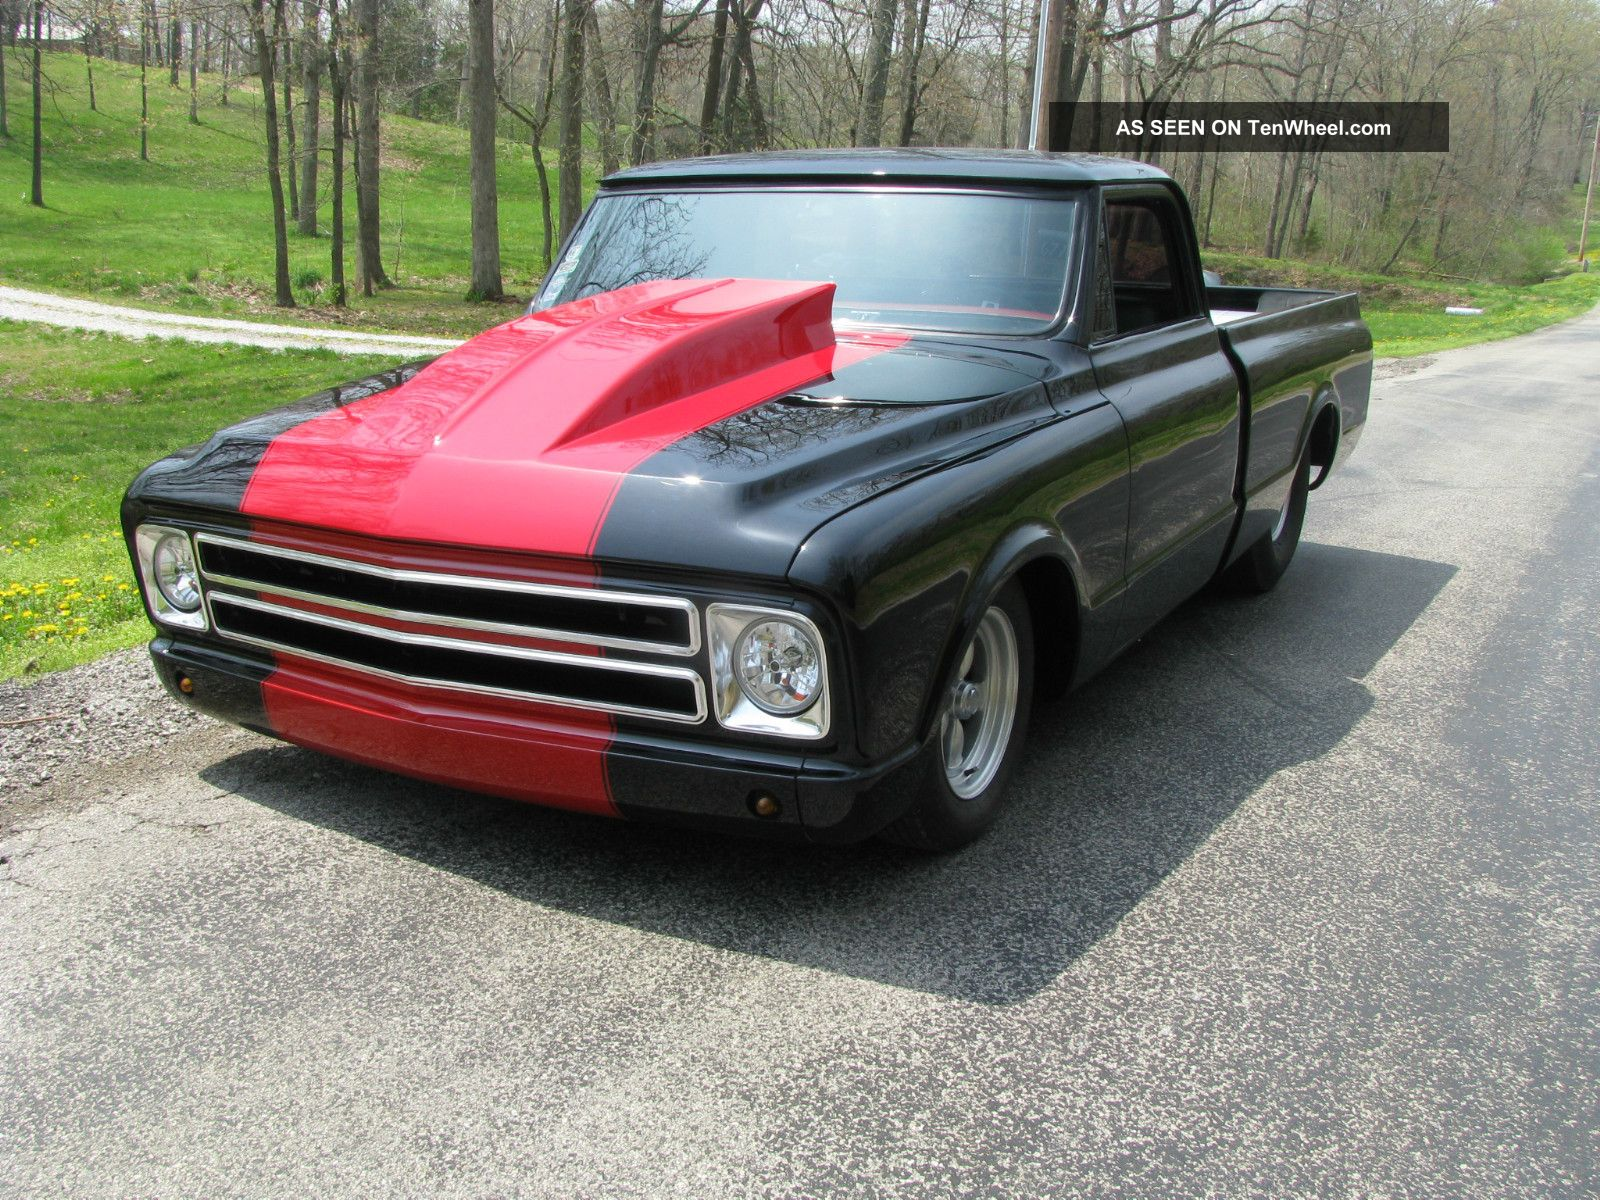 1972 Chevy / Gmc Pro Street Truck 67 68 69 70 71 72 C10 C-10 photo